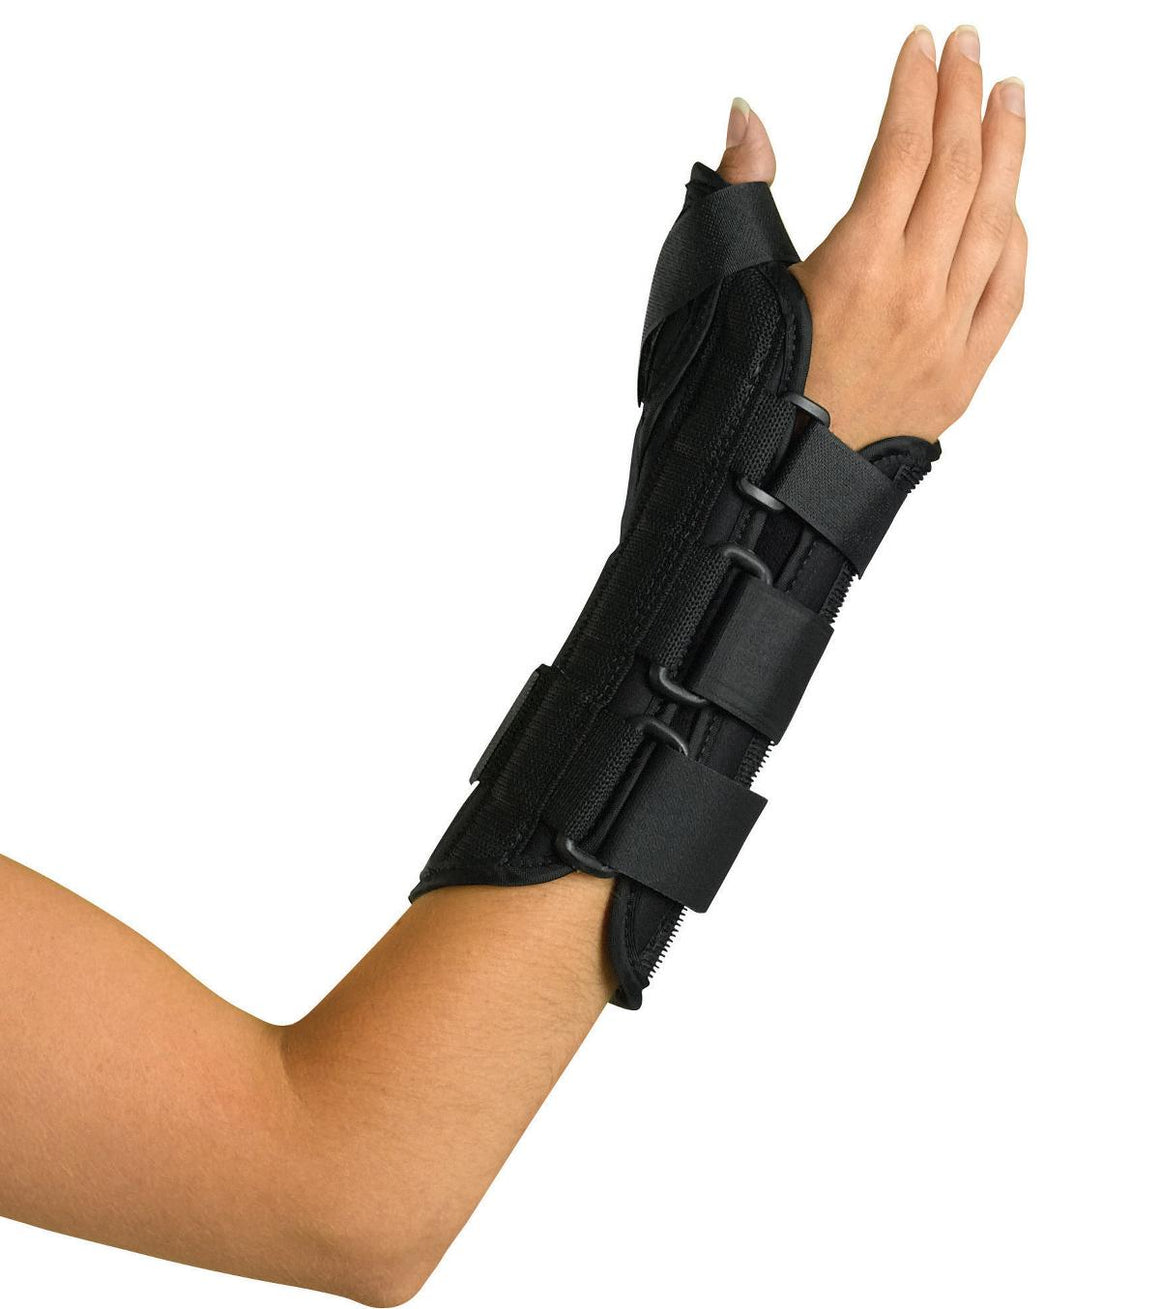 Wrist and Forearm Splint with Abducted Thumb,Large, Each